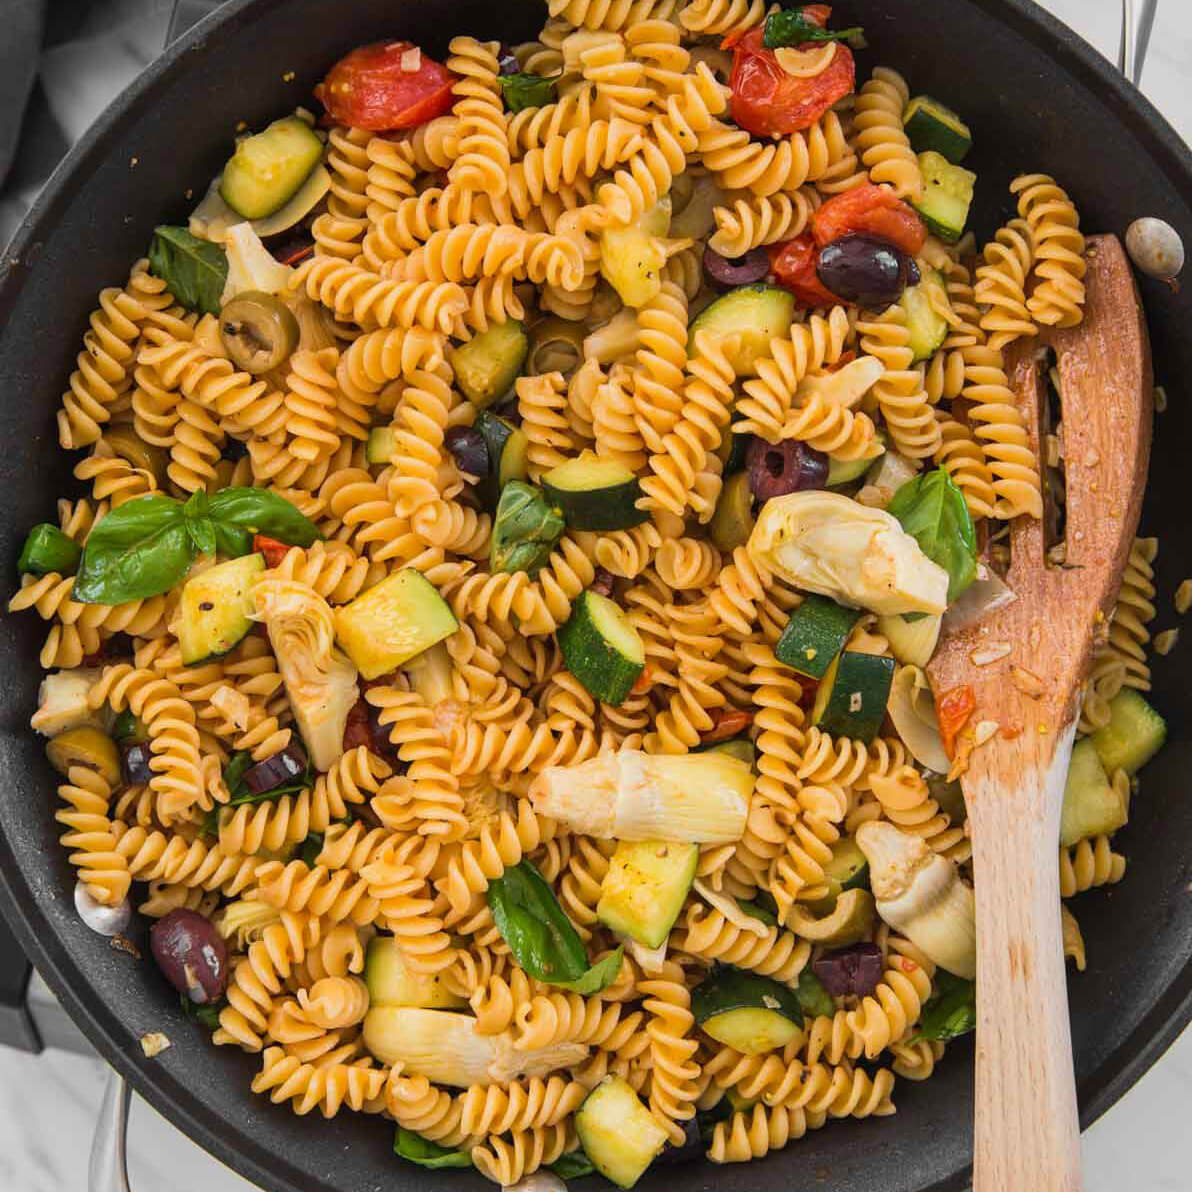 Healthy Mediterranean pasta with artichokes and olives in a large skillet with a wooden spatula.